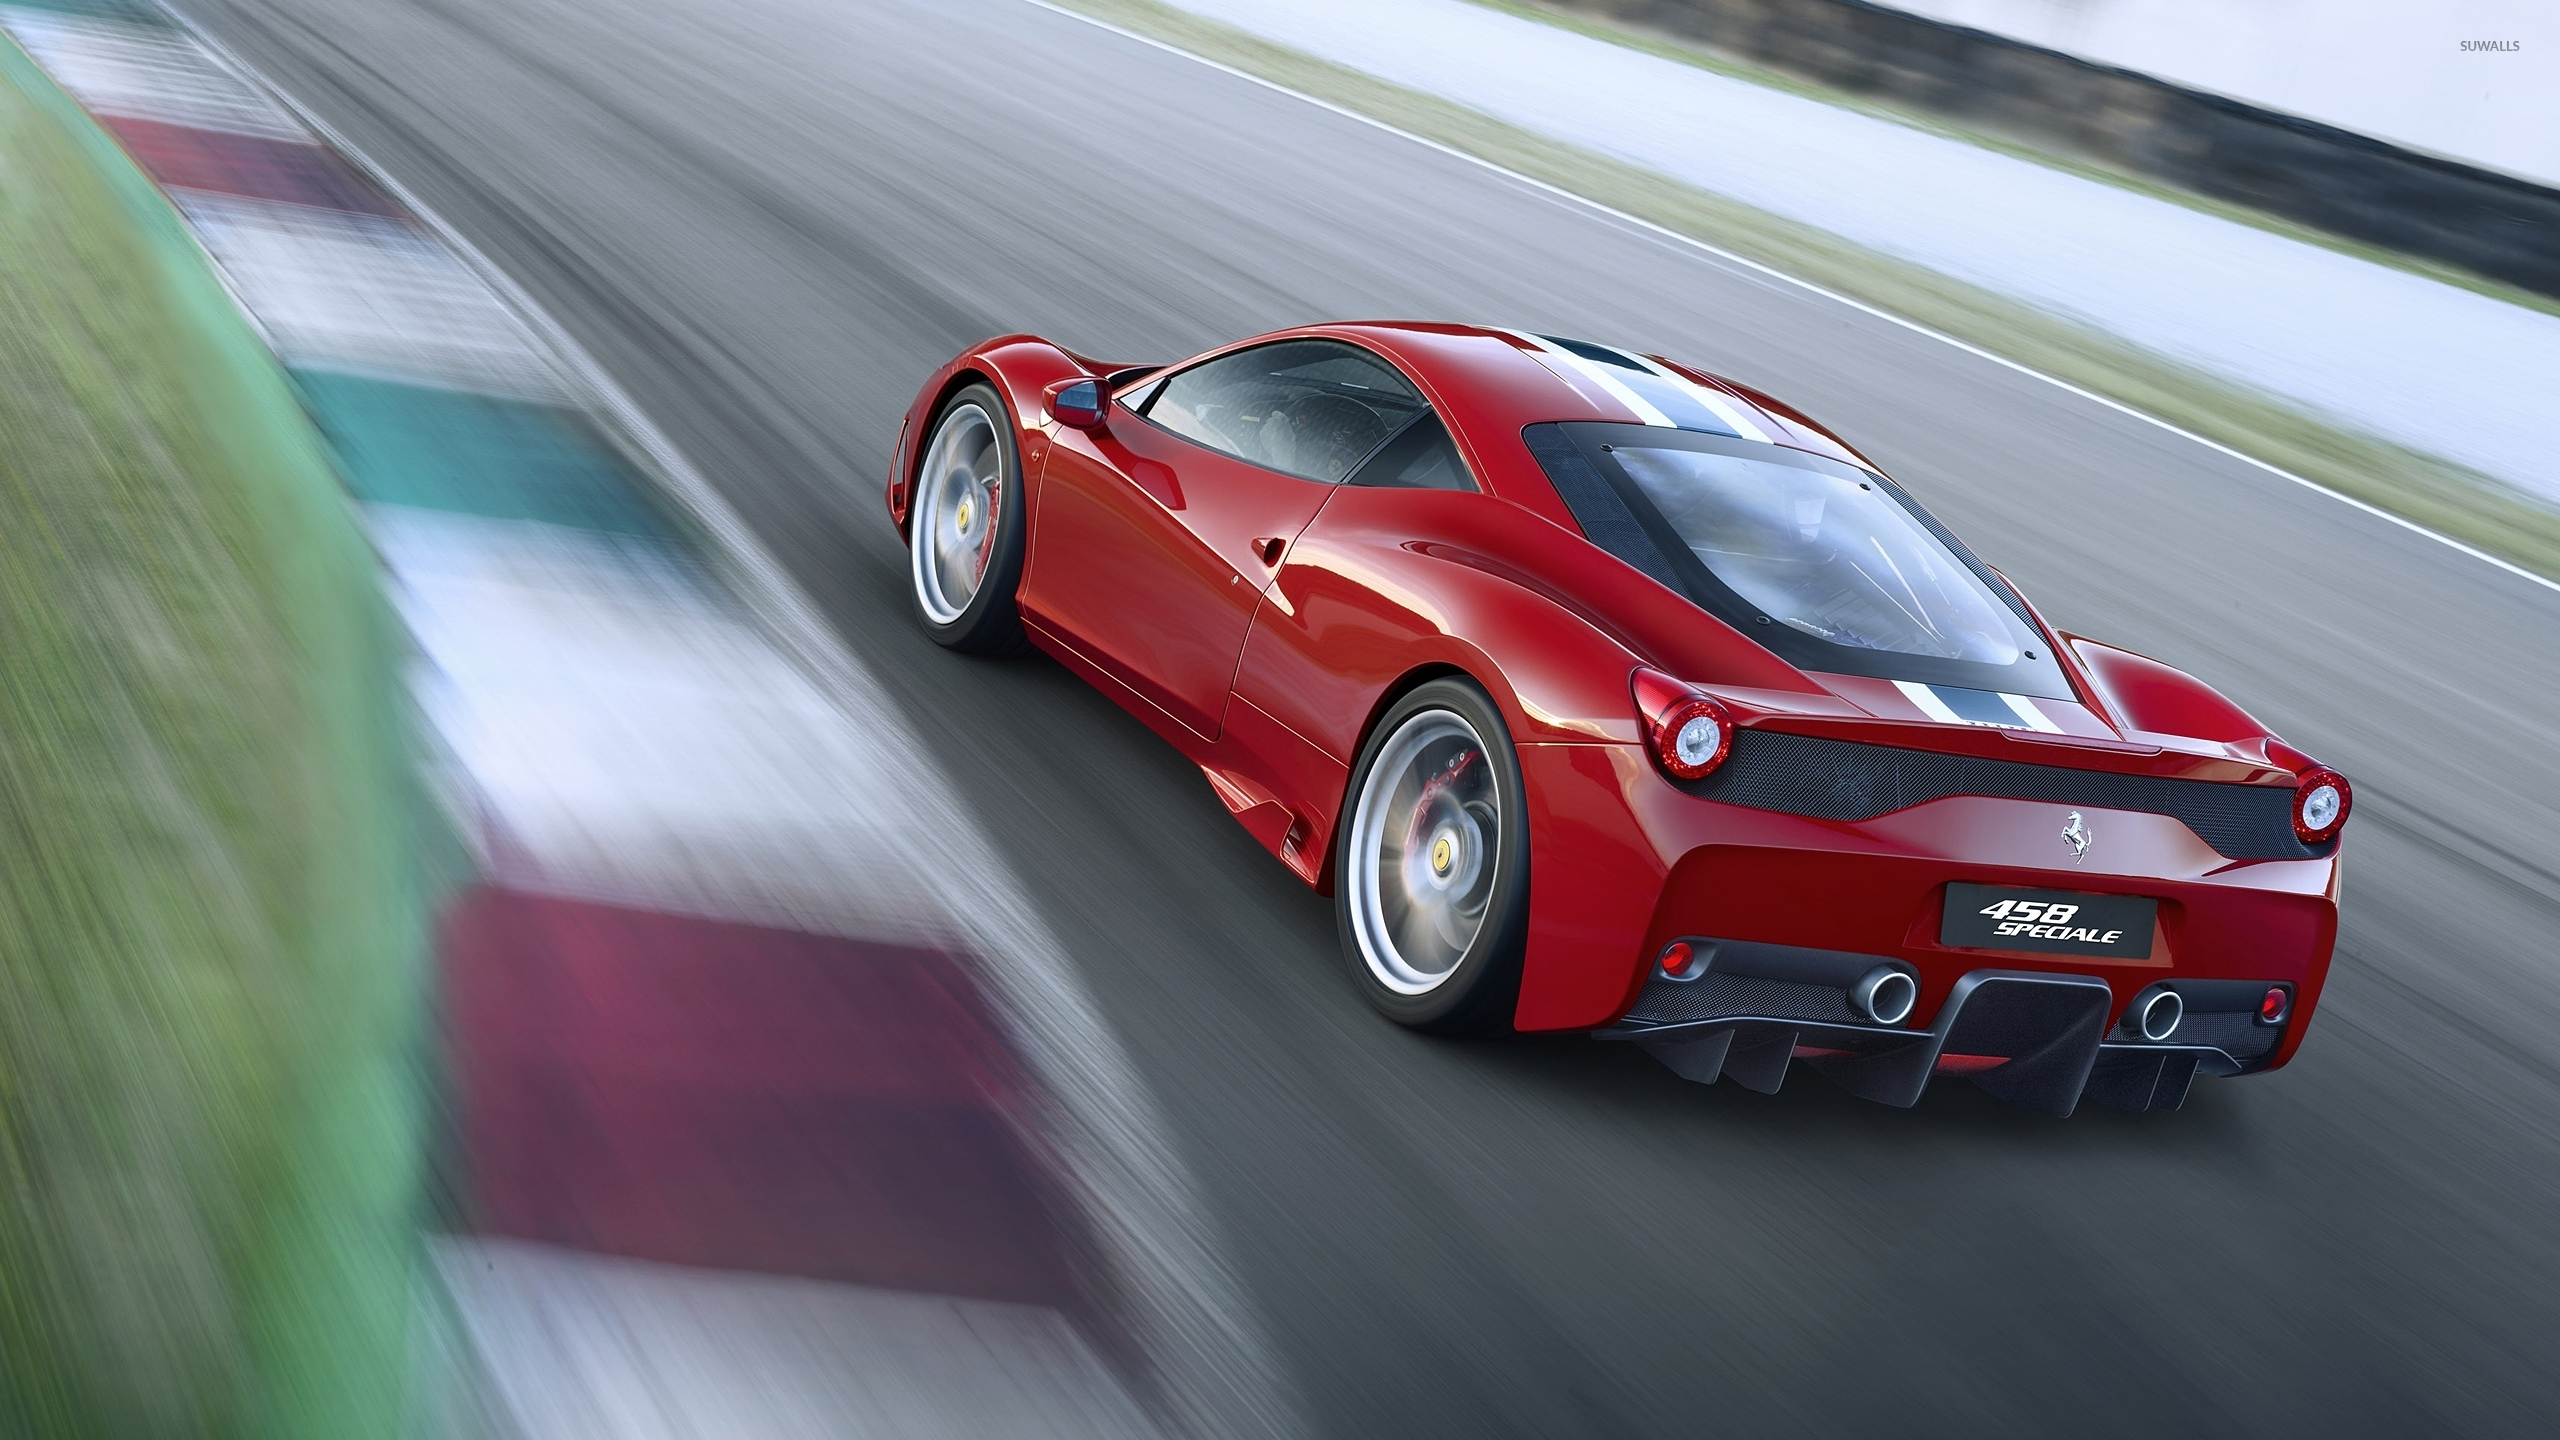 Ferrari 458 Speciale 8 Wallpaper Car Wallpapers 30905